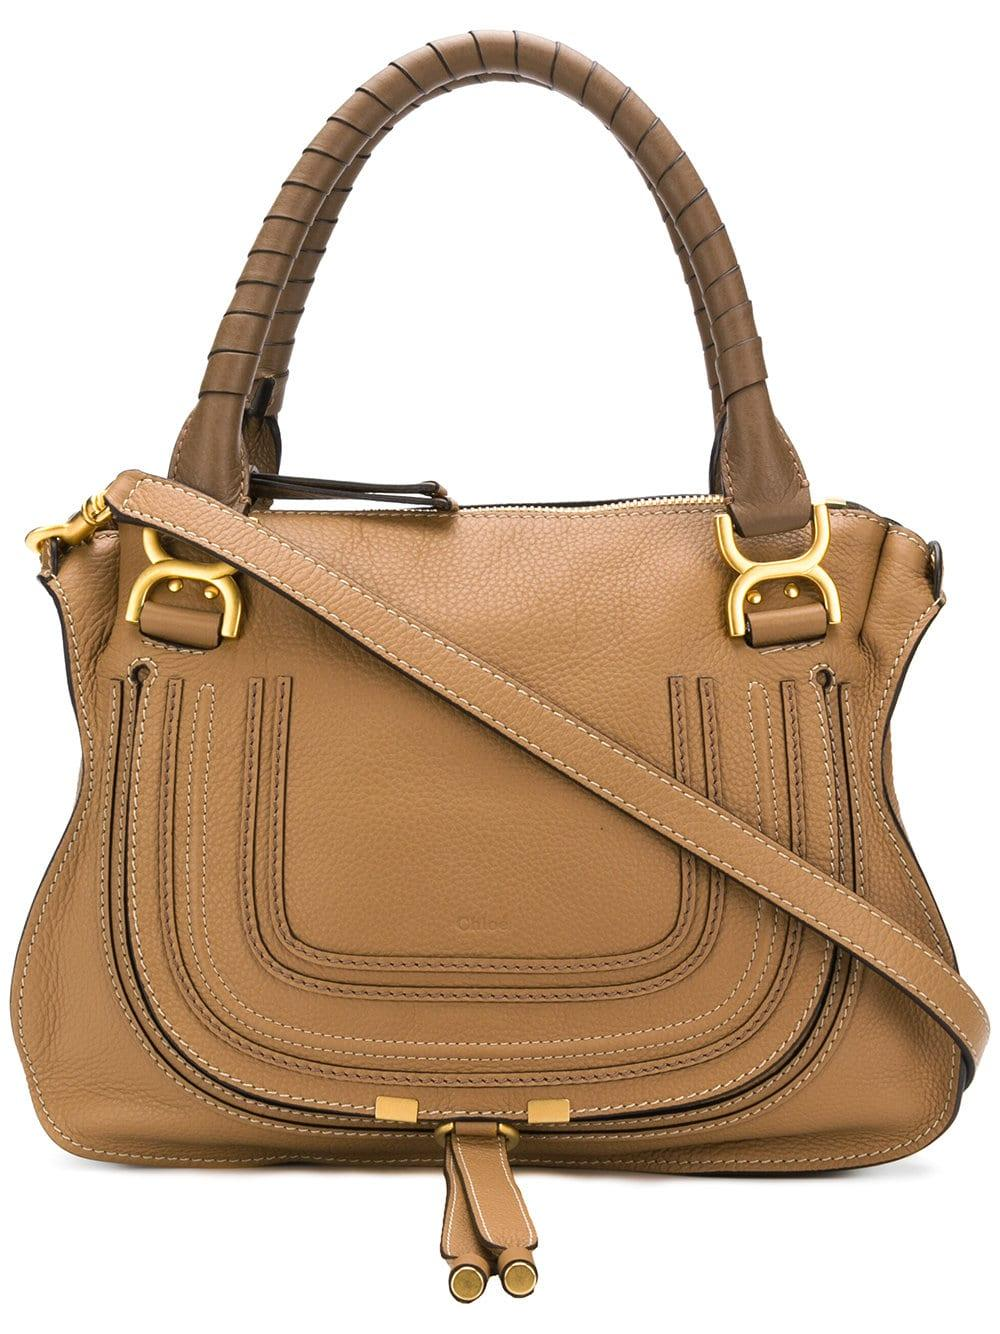 Marcie Med Double Carry Calfskin Bag Item # CHC10WS86016120C